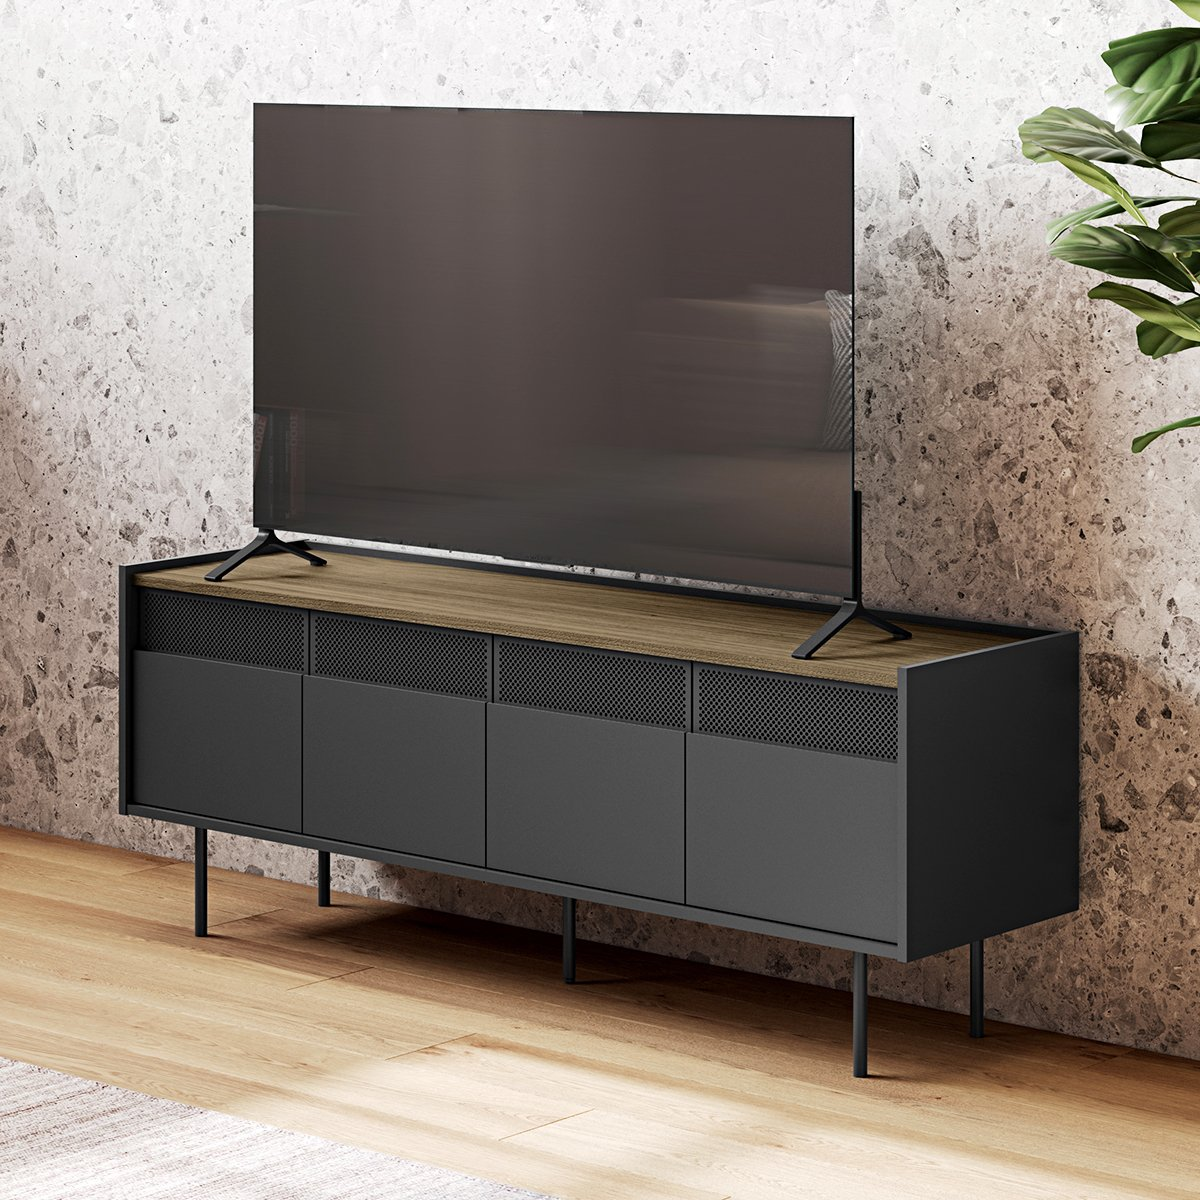 meuble tv radio noir noyer fsc metal tema home